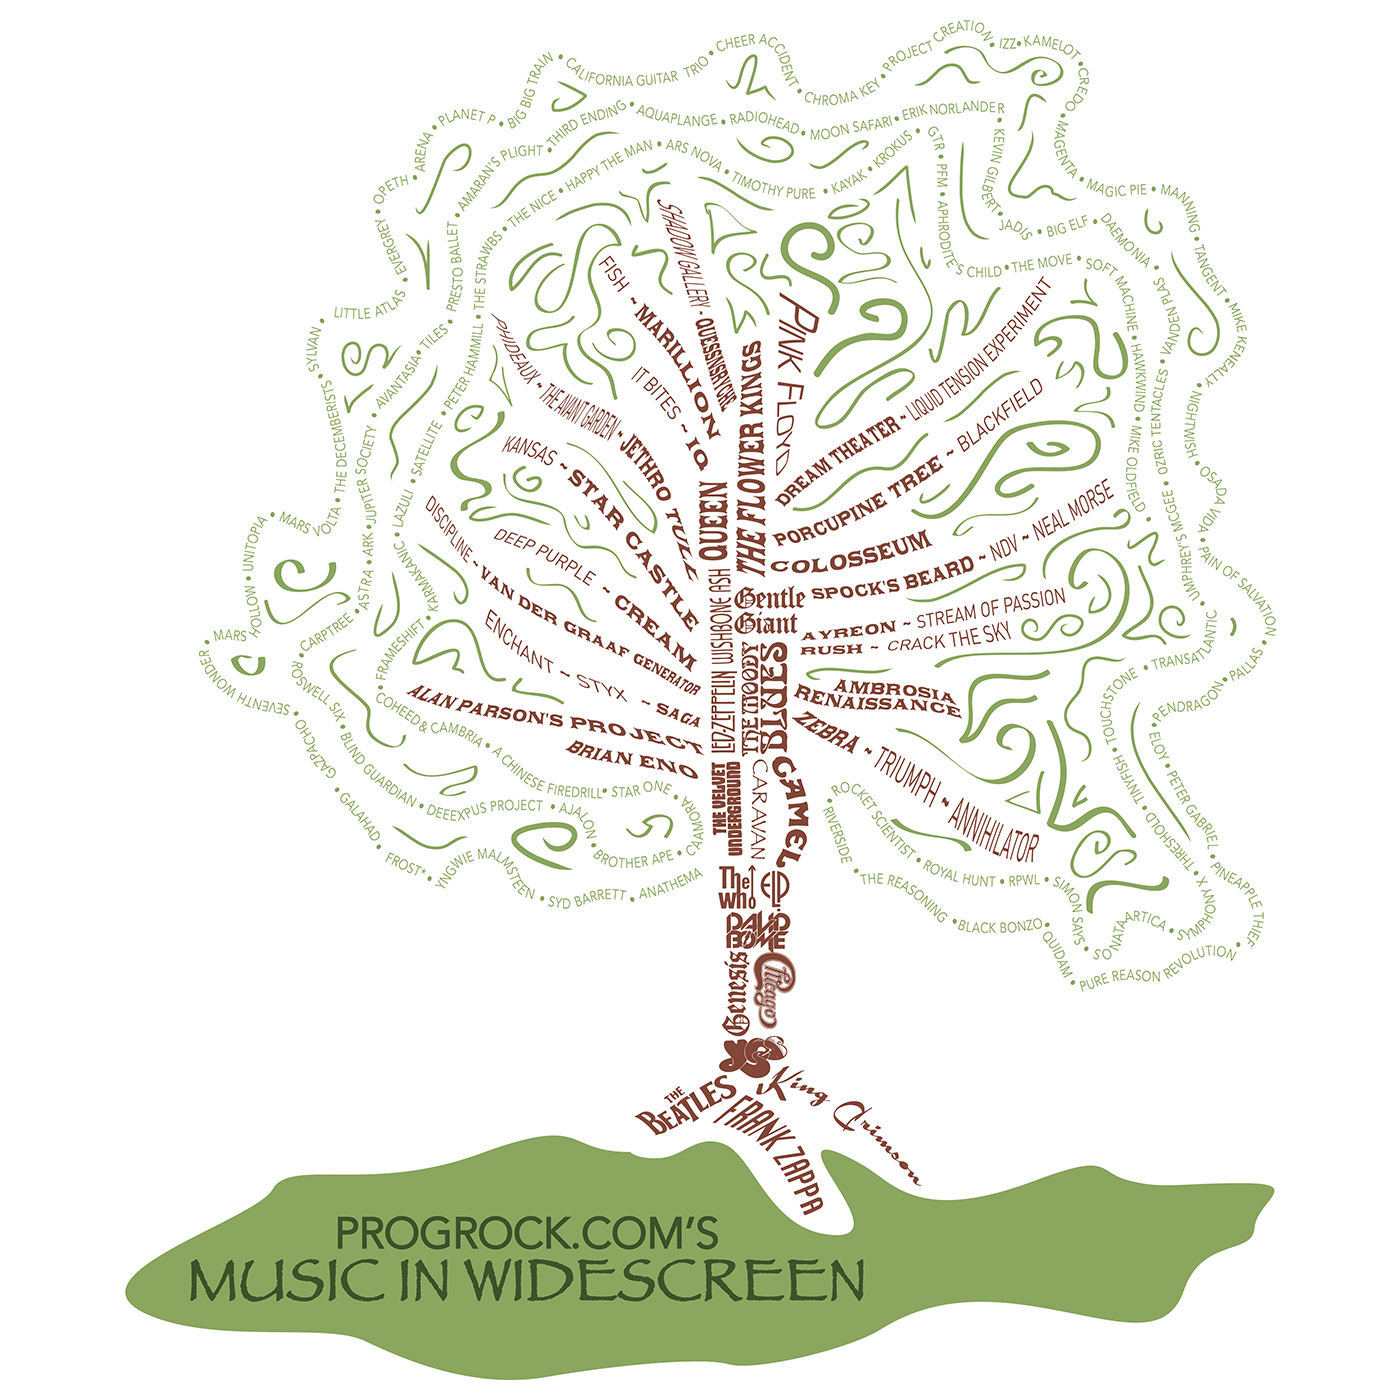 Progrock.com's - Music in Widescreen's - Progressive Rock Podcast